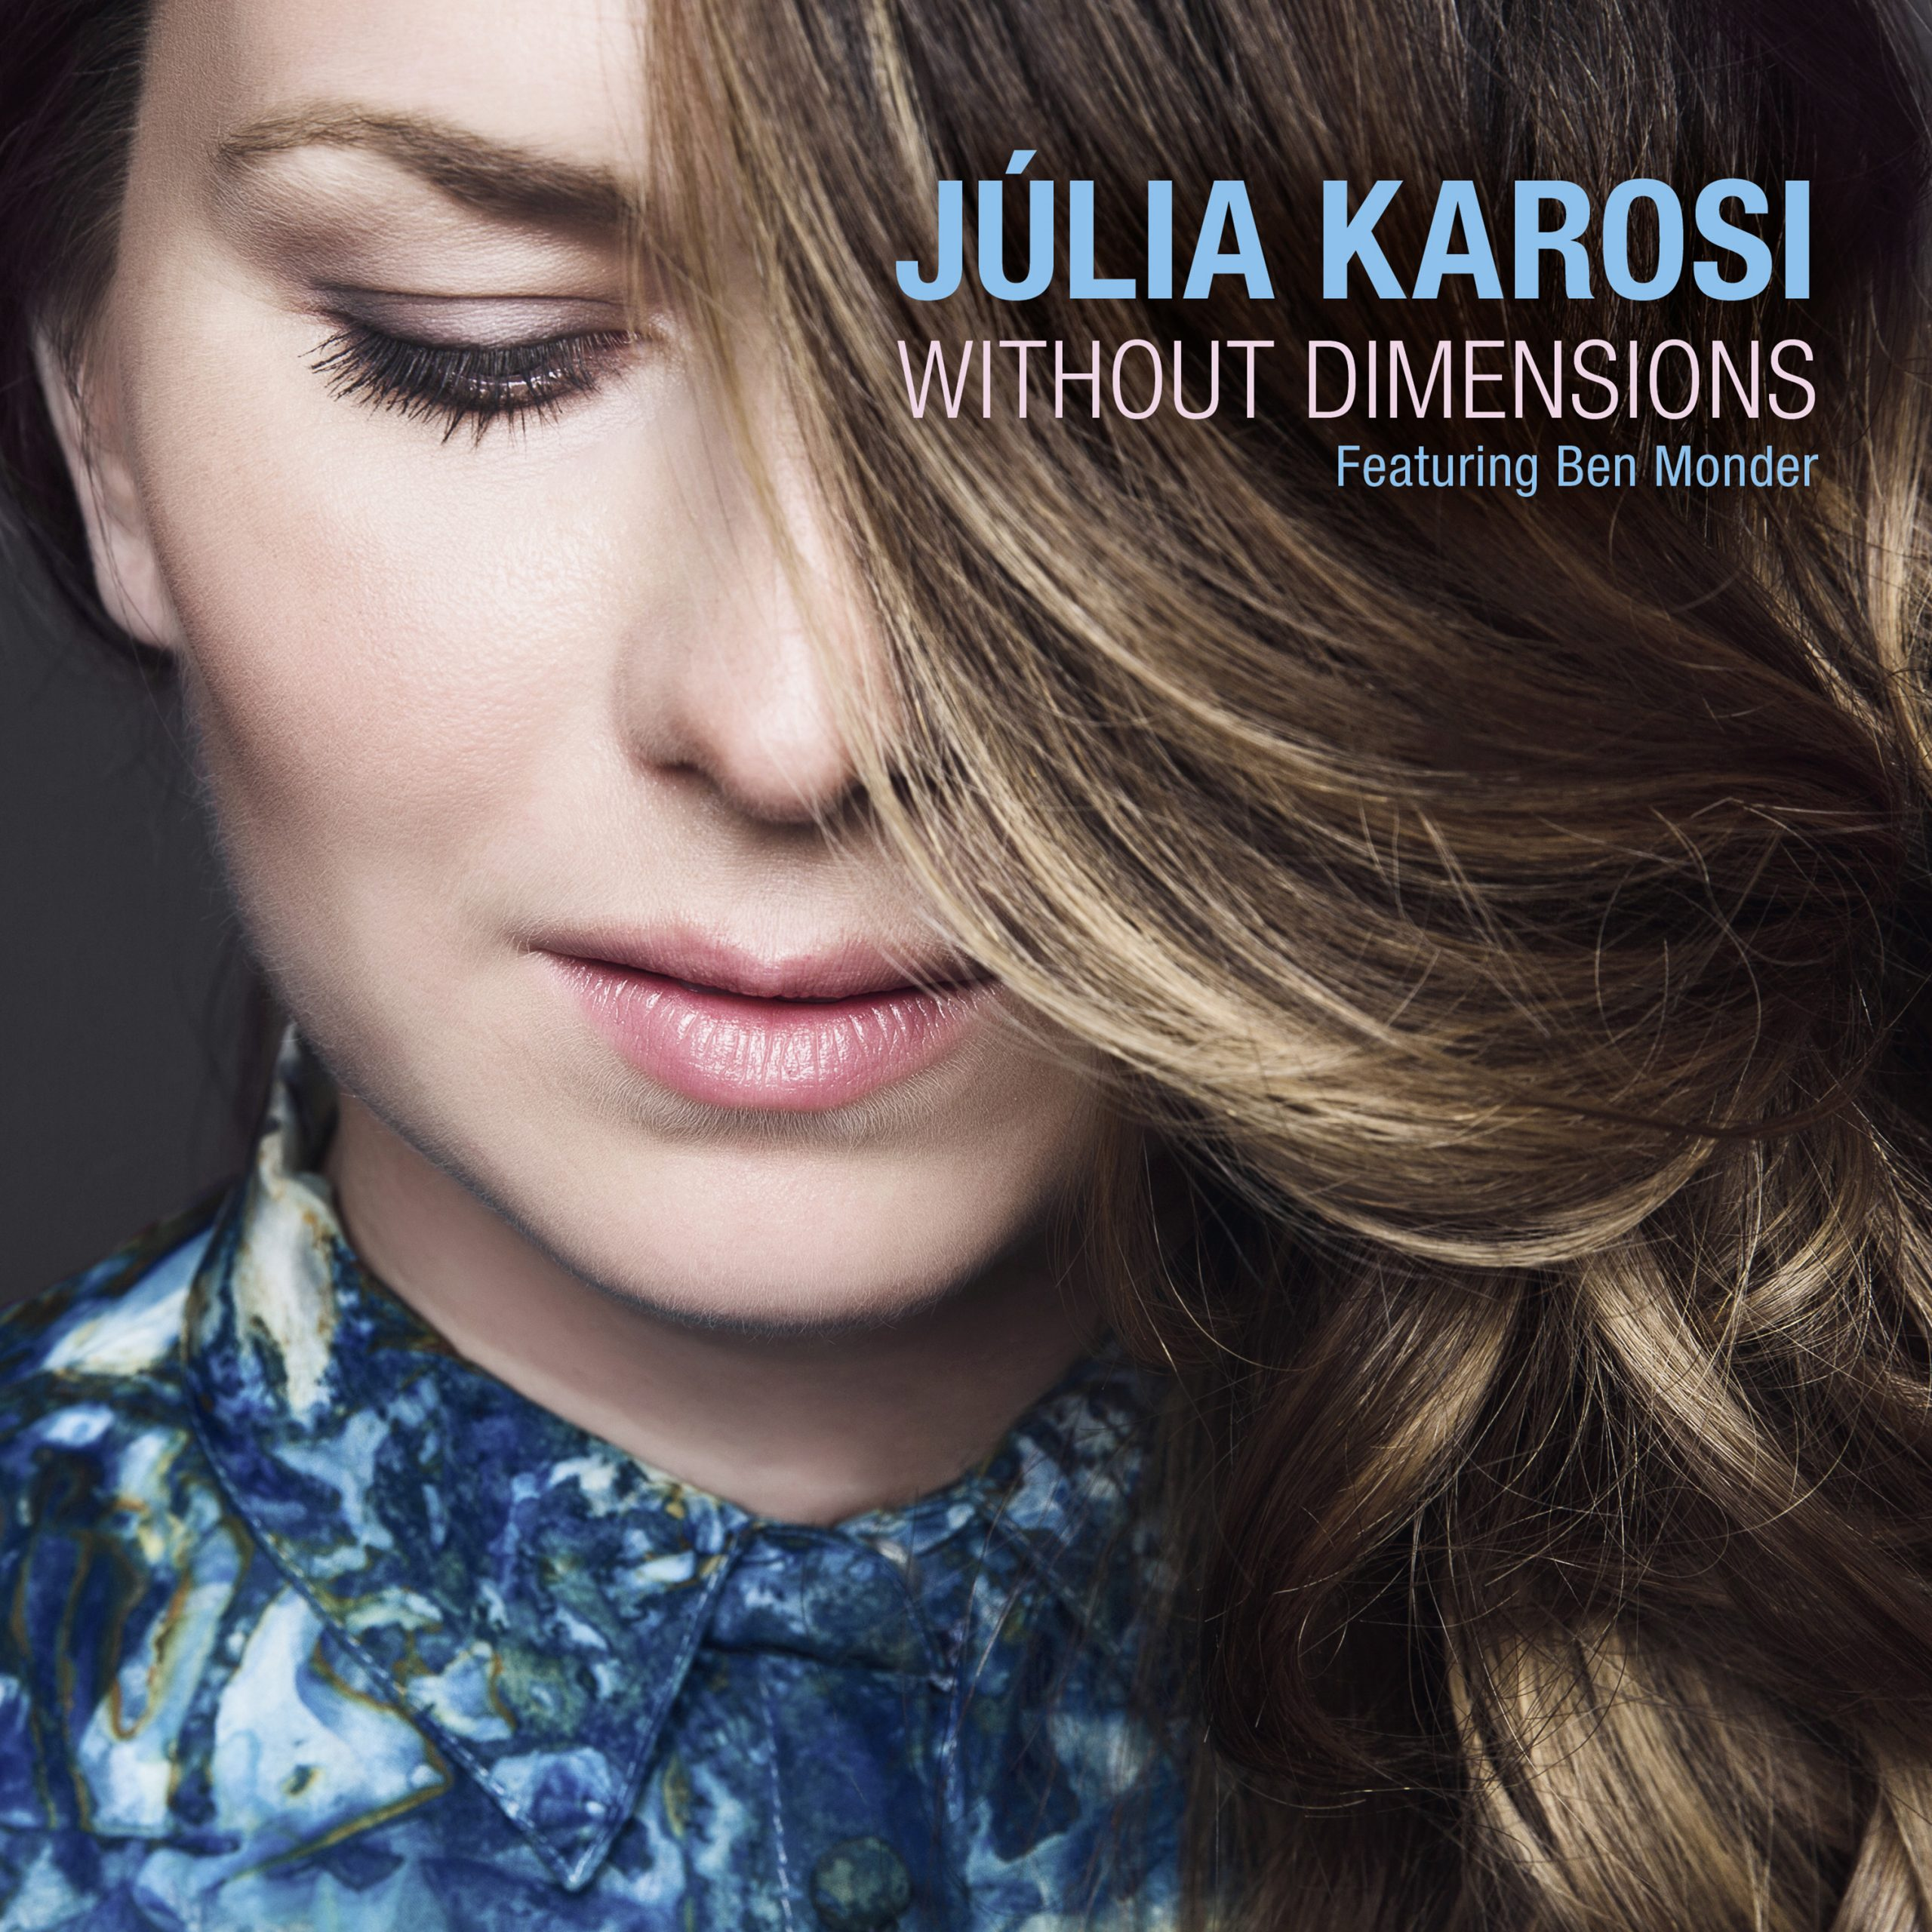 NEW RELEASE: Júlia Karosi Explores Bartók, Kodály; Presents New Works on WITHOUT DIMENSIONS, out 10/16/20 (with Ben Monder)